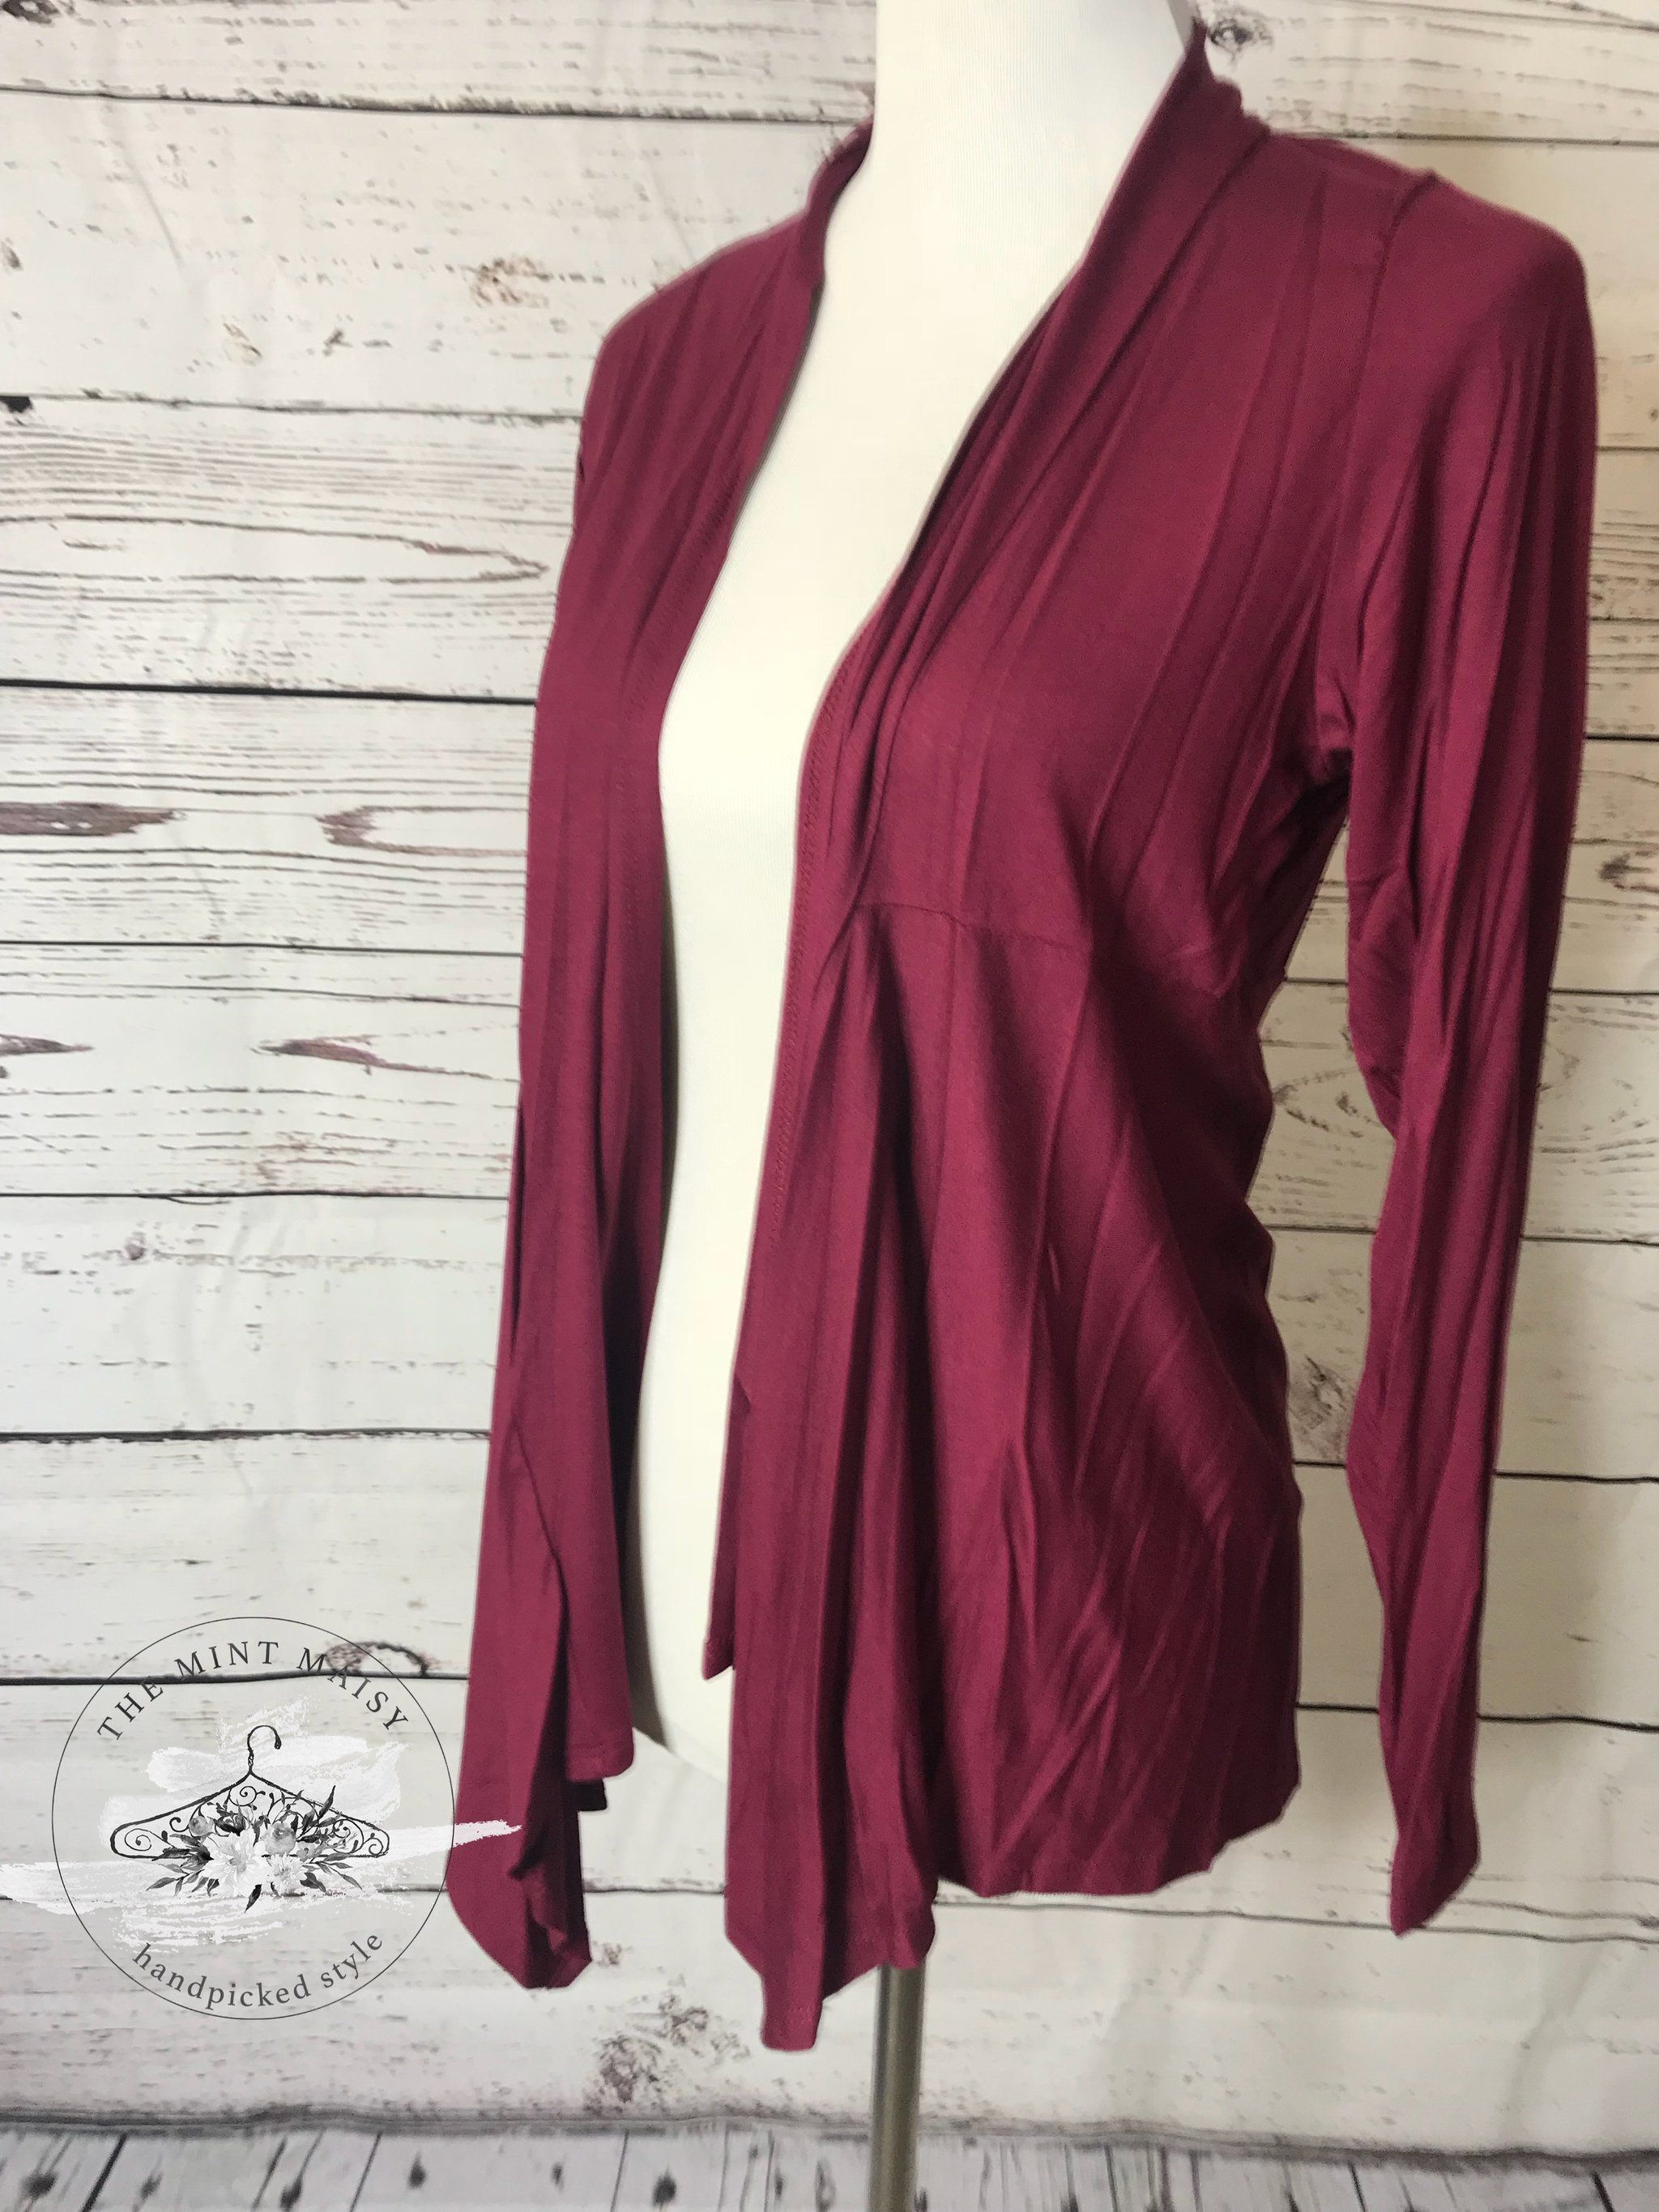 d75a6dcc87 Light weight burgundy light weight cardigan. Perfect for running that  errand or complimenting that one special dress or shirt.Sizing  Recommendation  True to ...